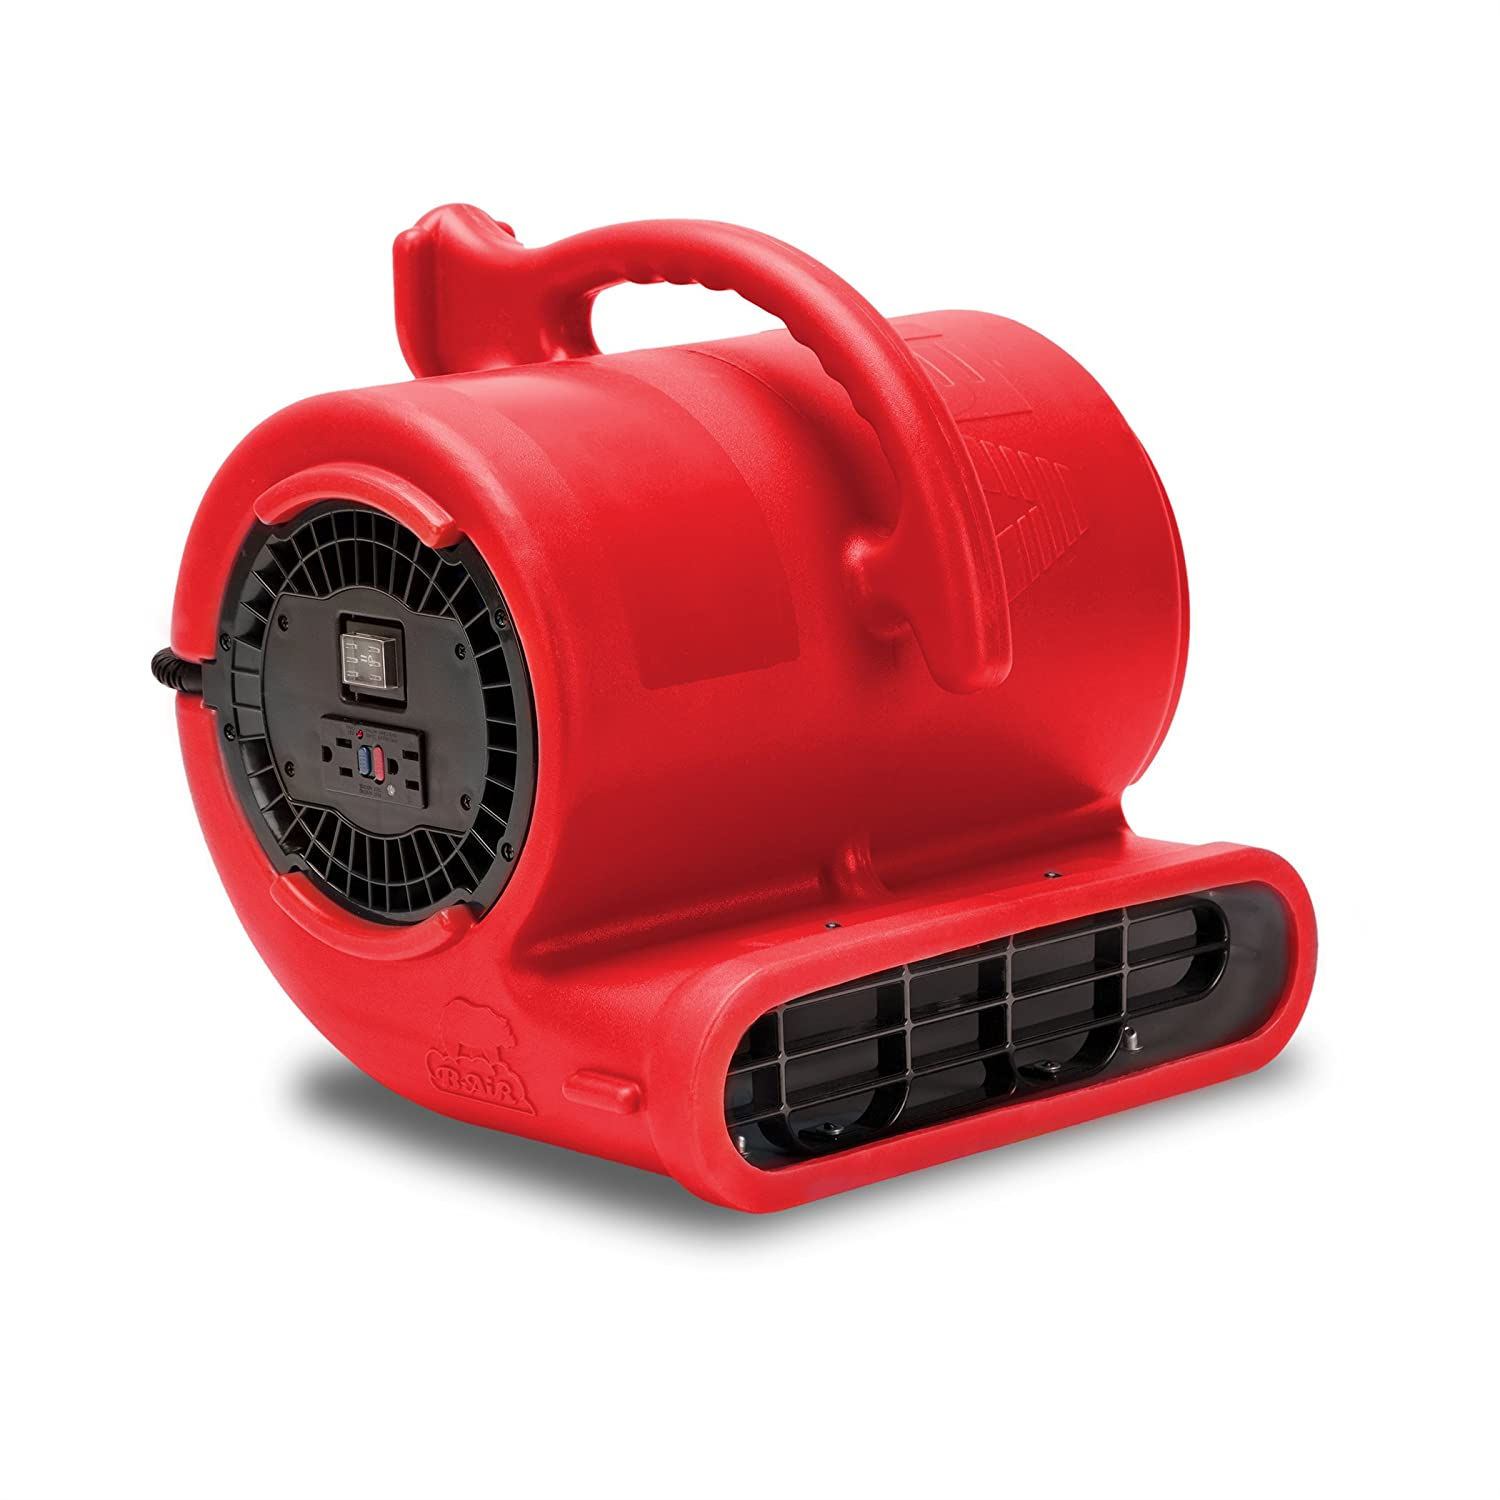 B-Air VP-33 1/3 HP 2530 CFM Air Mover for Water Damage Restoration Carpet Dryer Janitorial Floor Blower Fan, Green